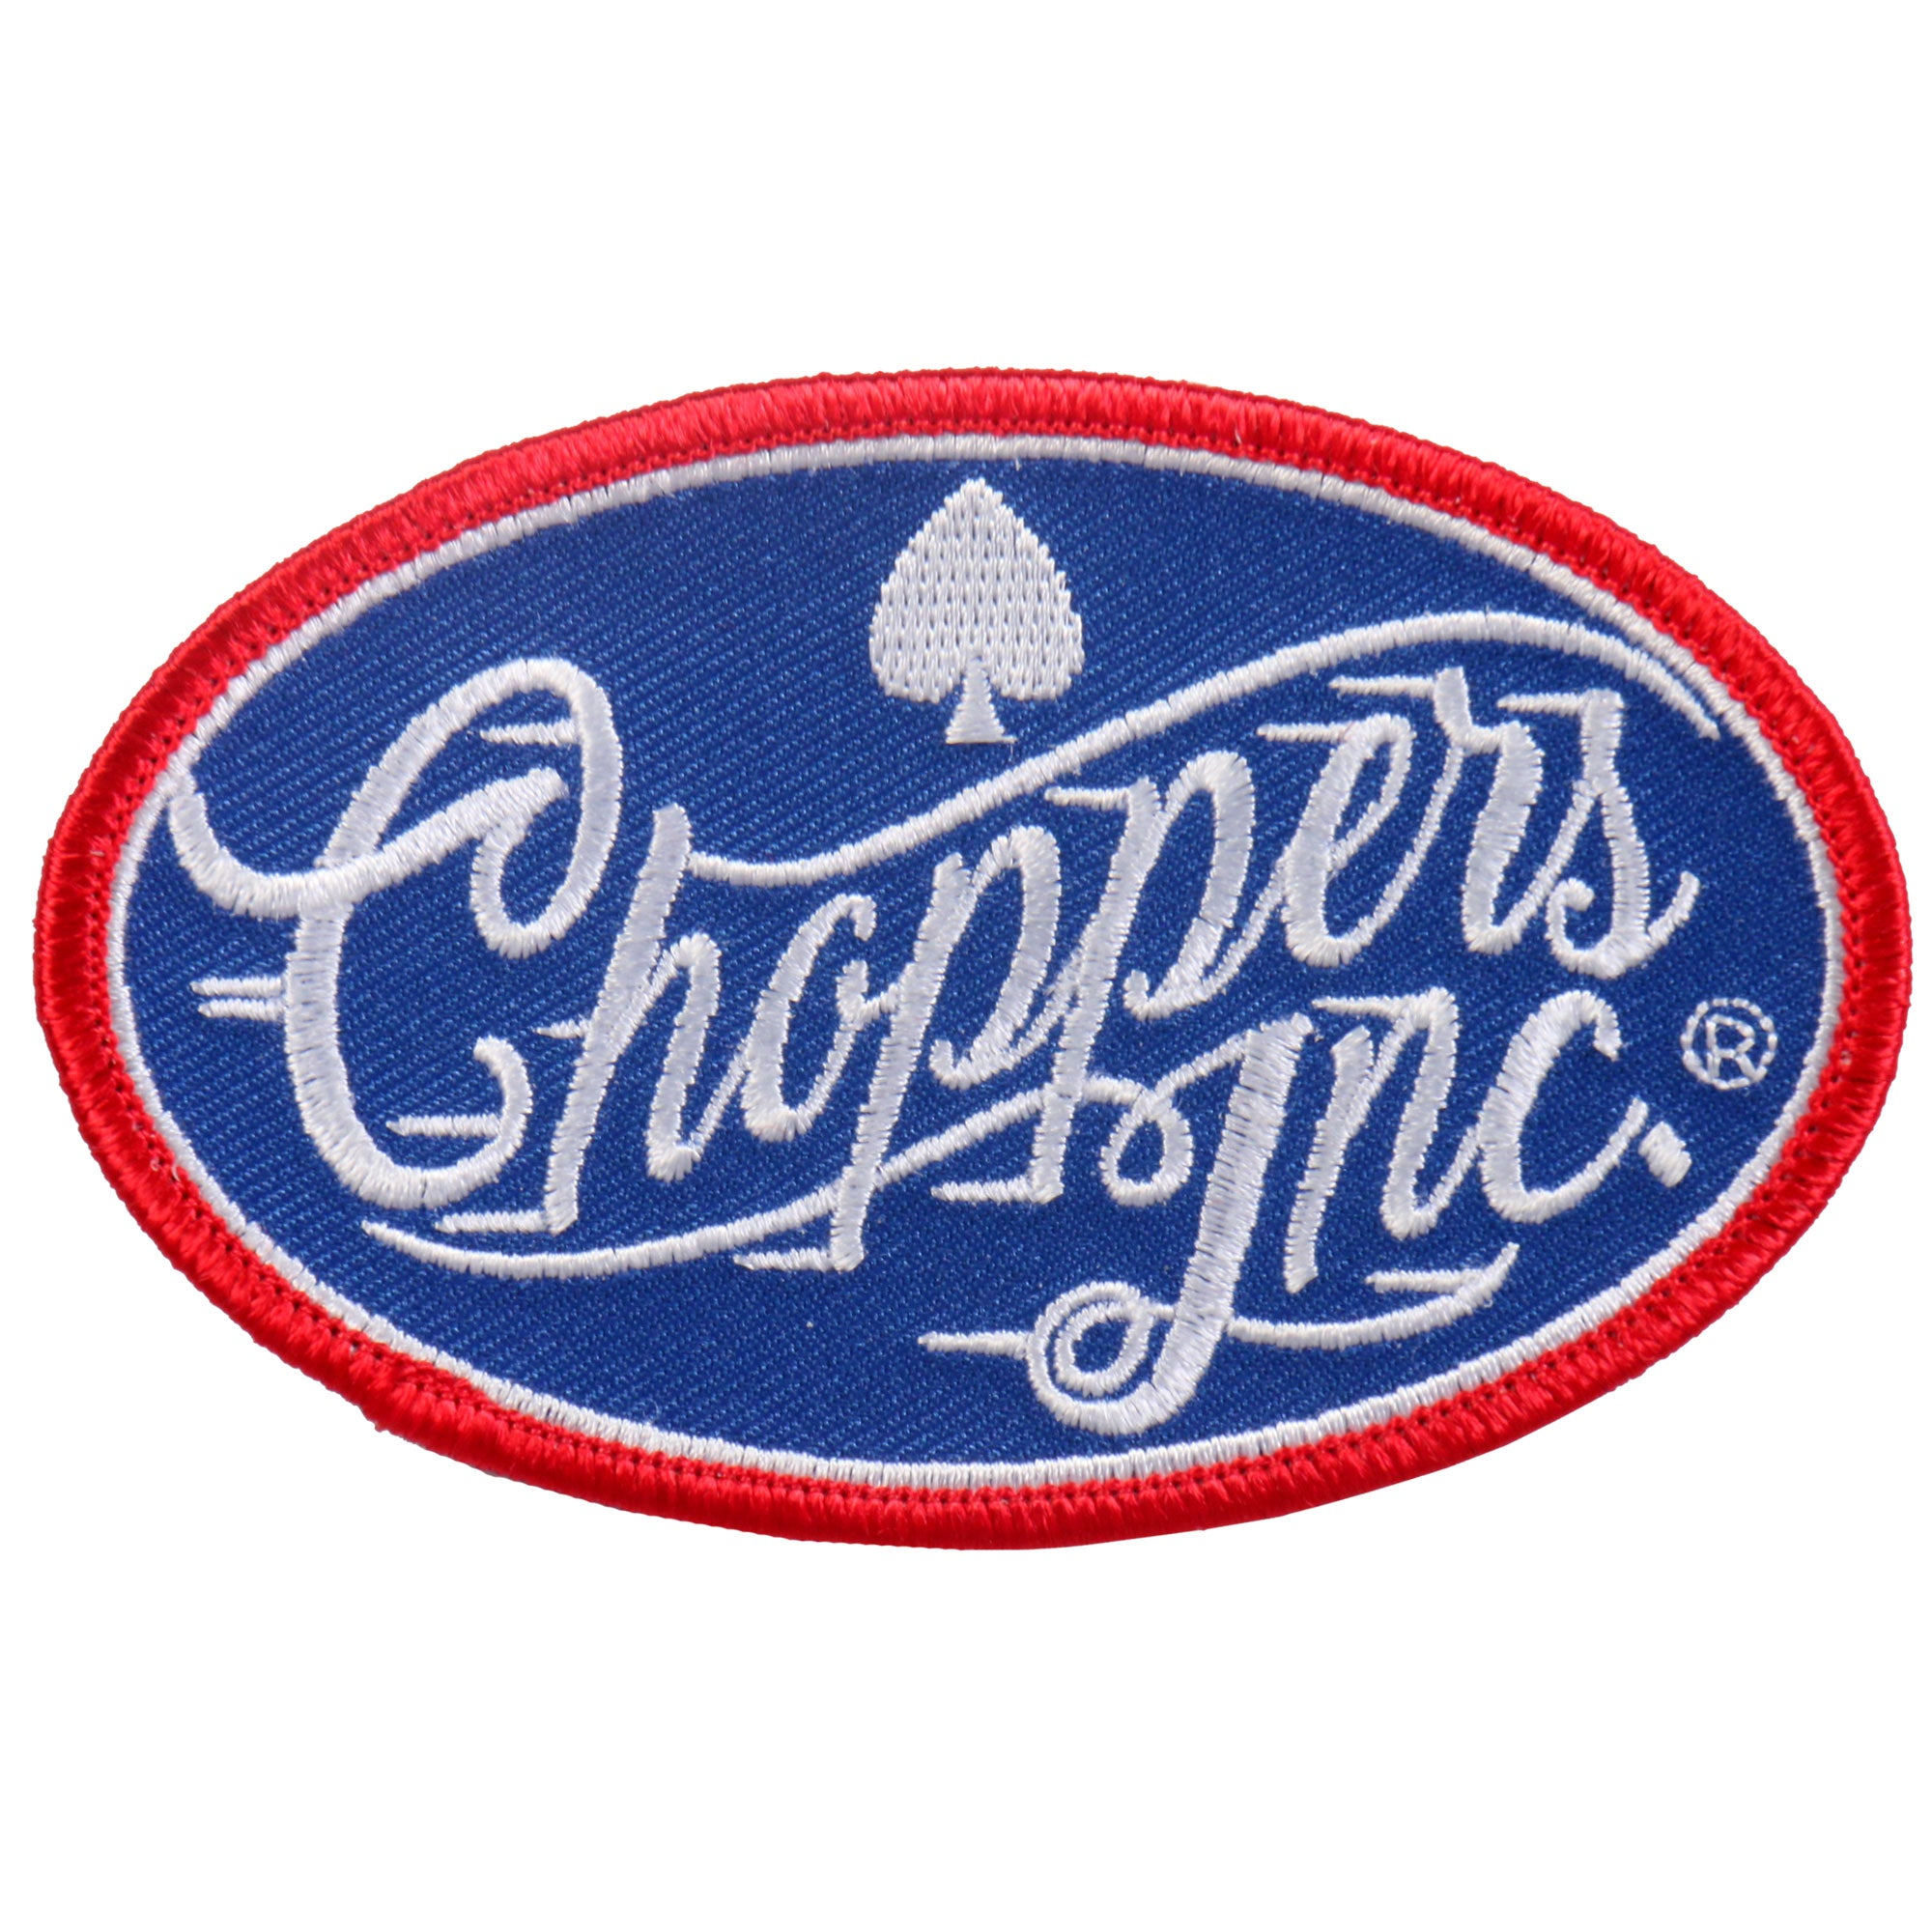 Official Billy Lane's Choppers Inc Red and Blue Vintage Racing Patch